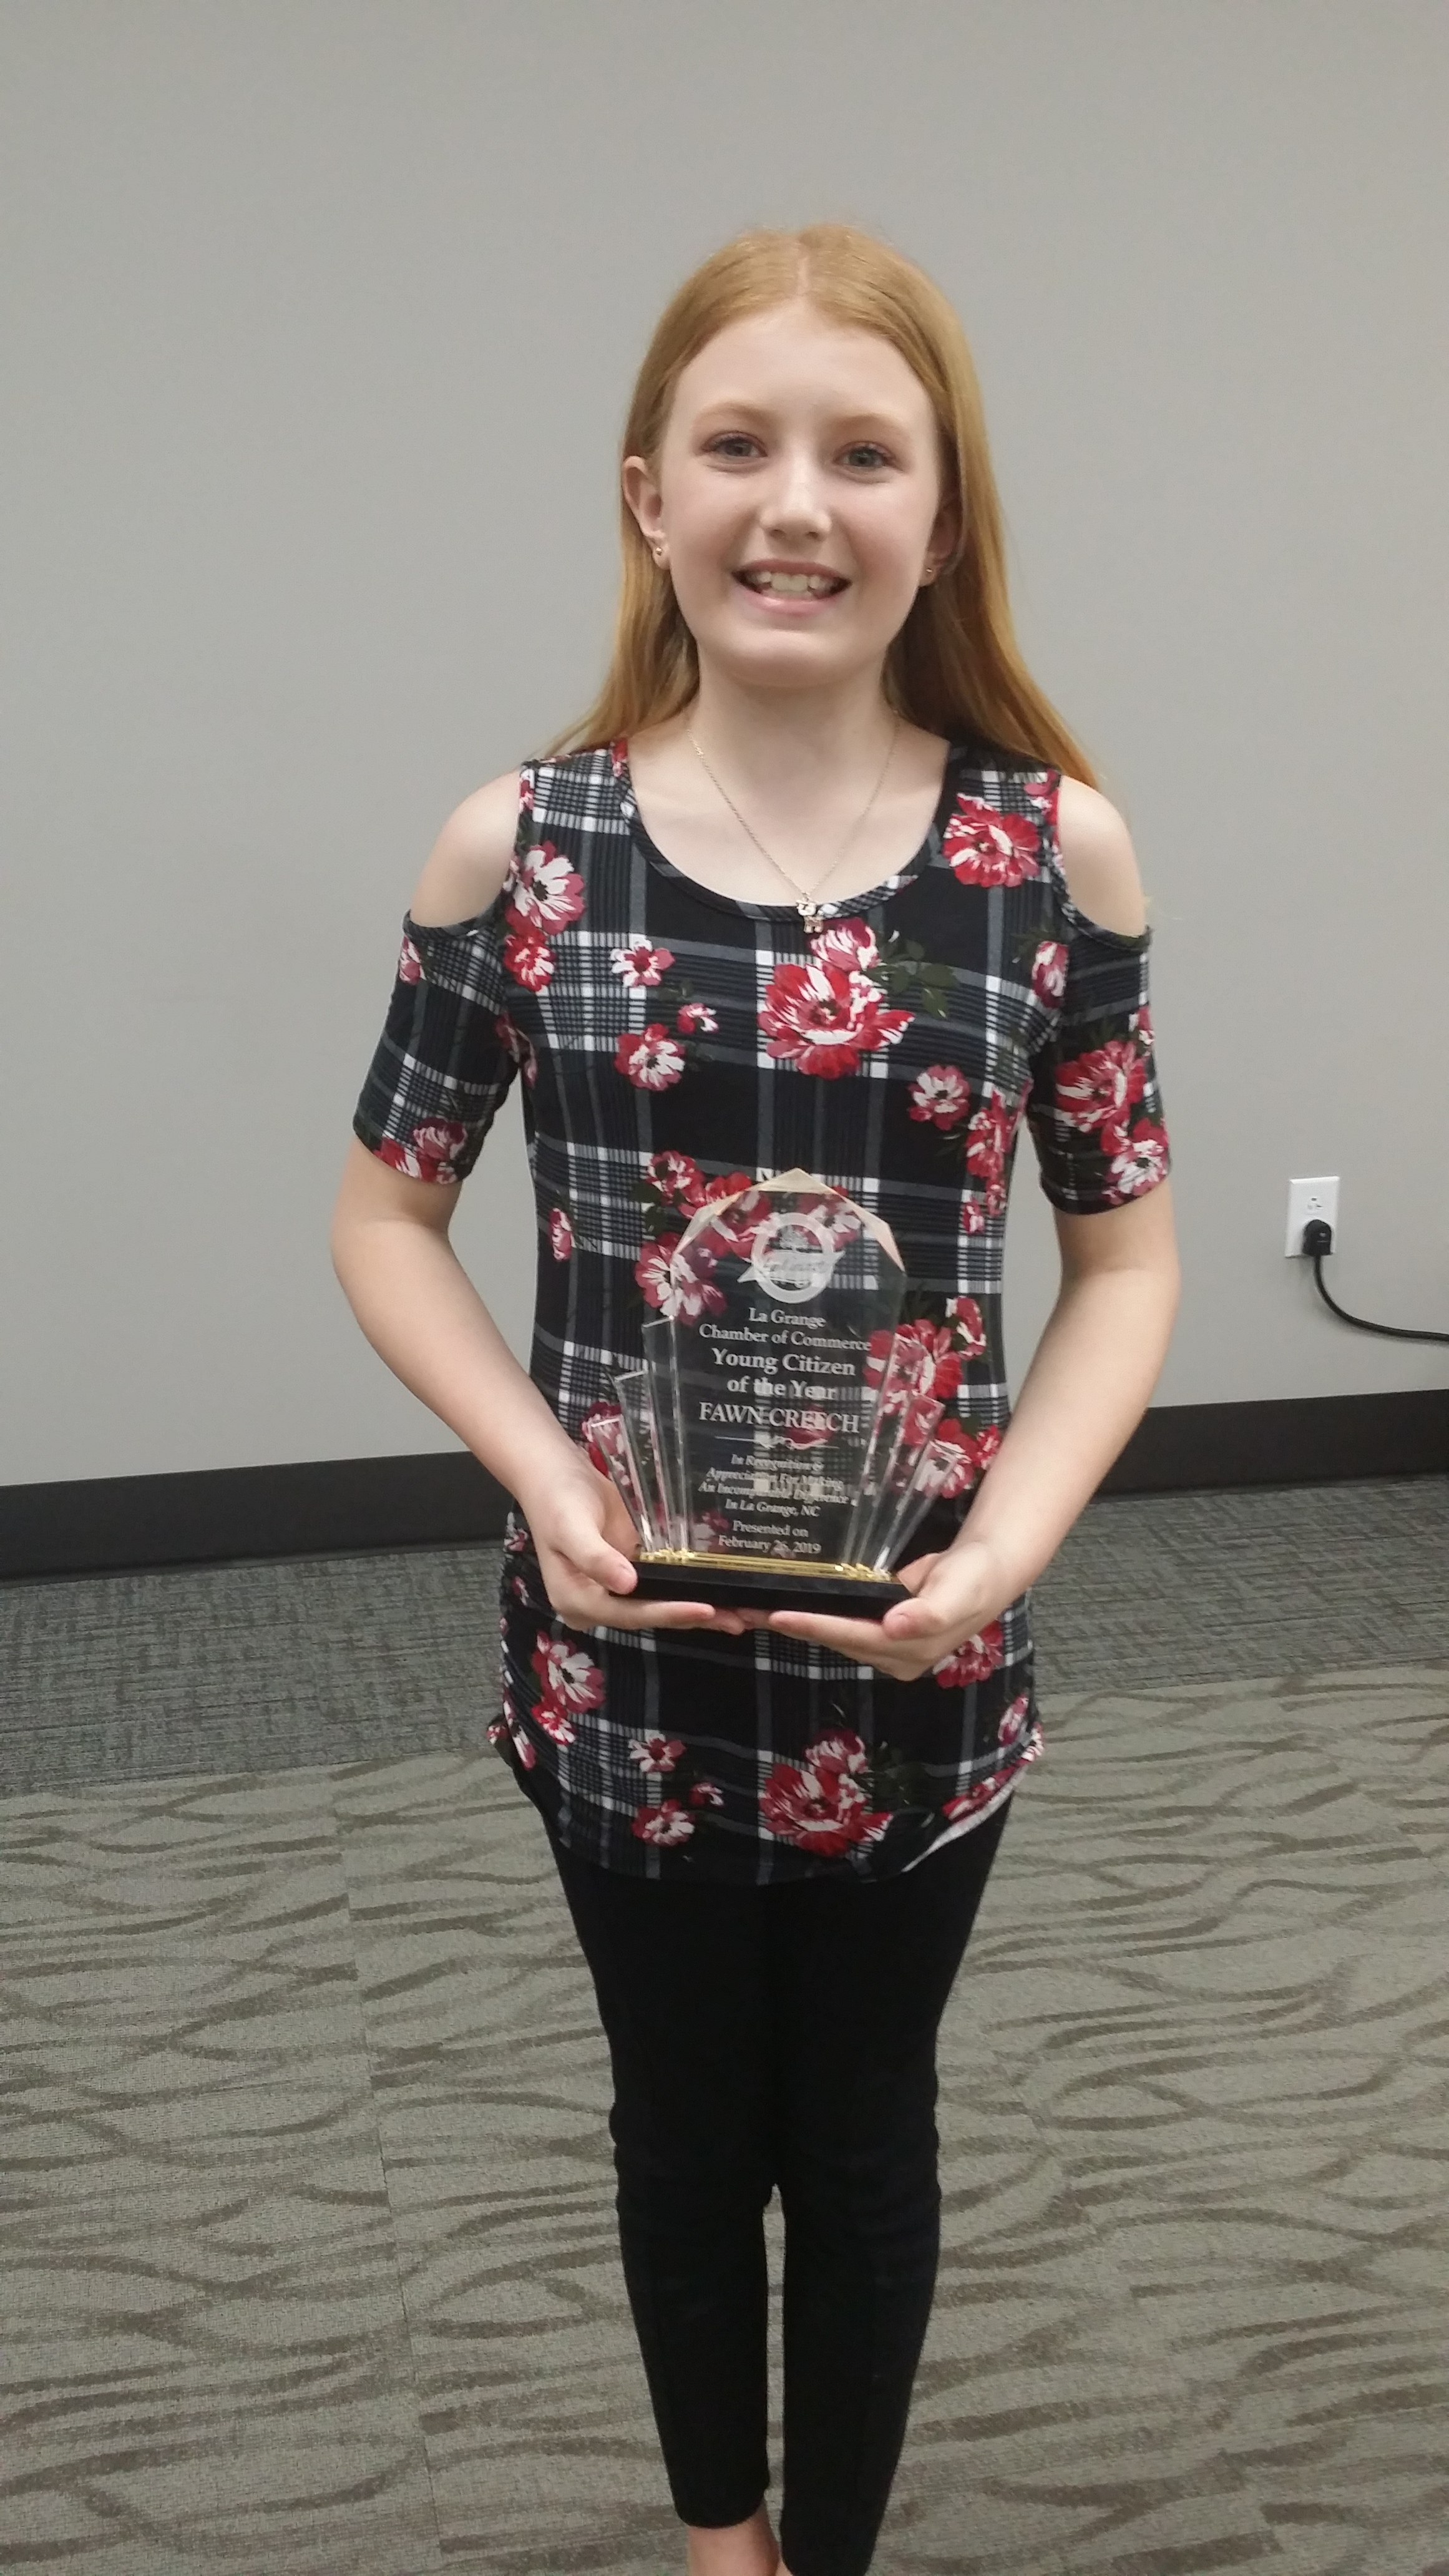 La Grange Chamber of Commerce Young Person of the Year 2018 Fawn Creech